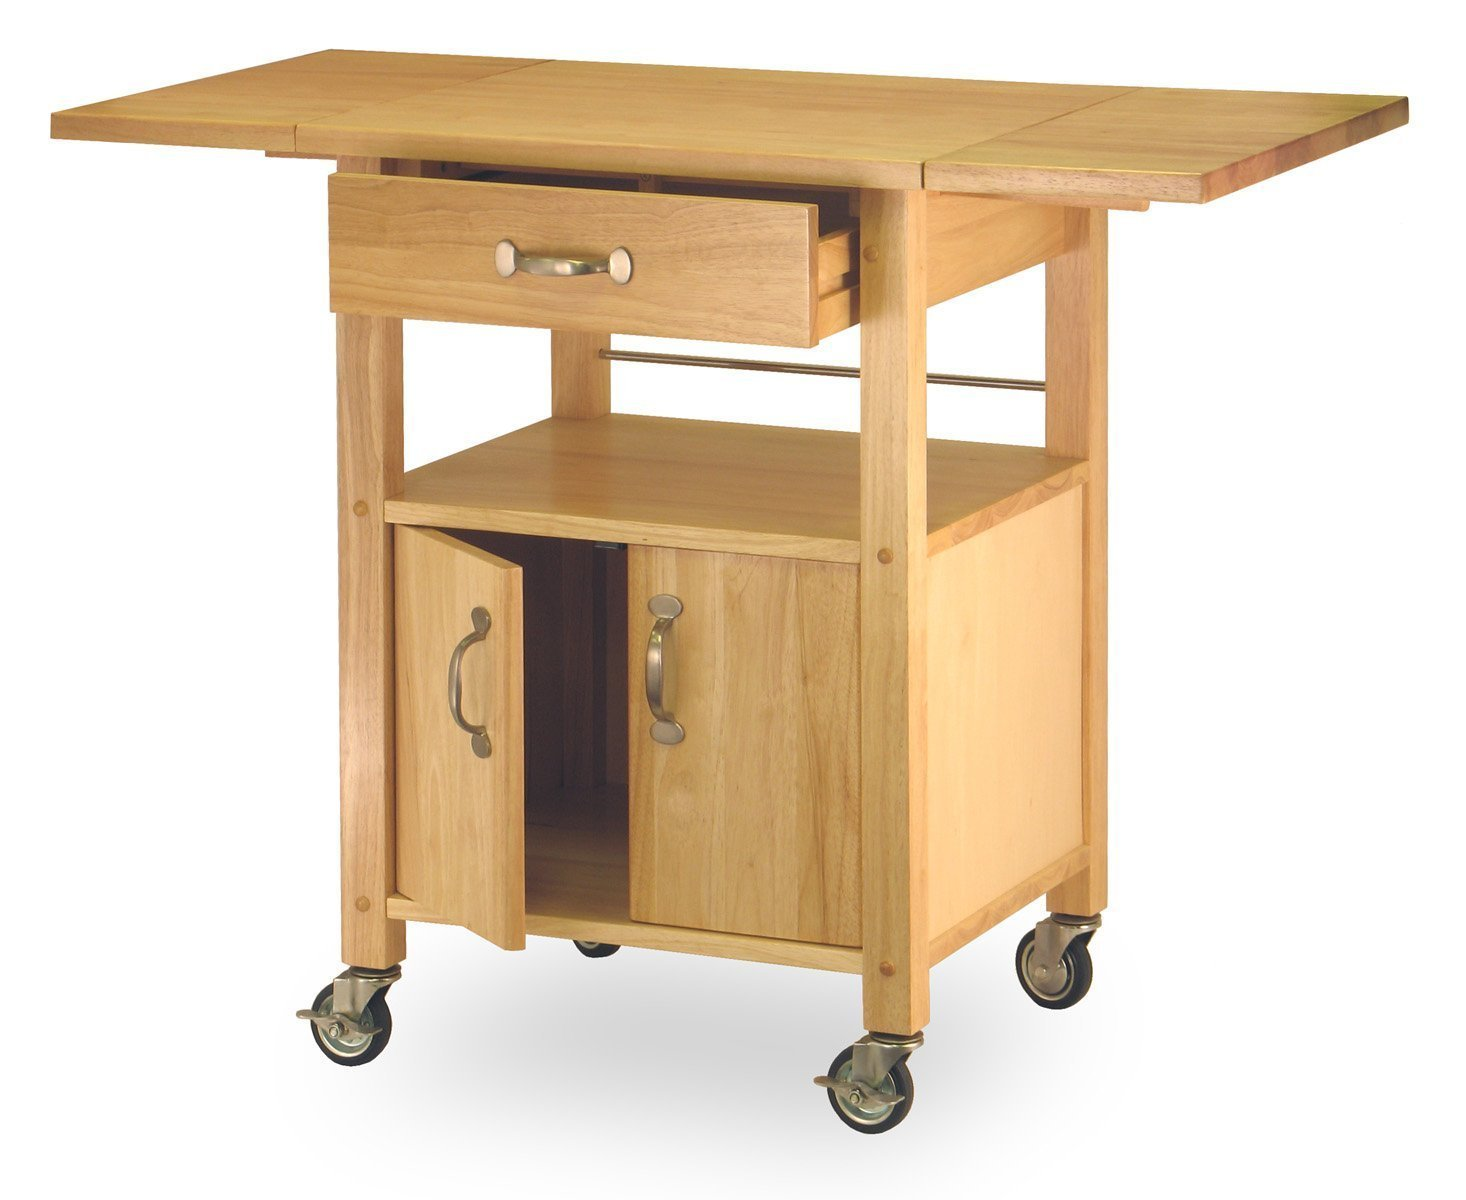 rolling kitchen cabinet costway rolling kitchen cart island wood